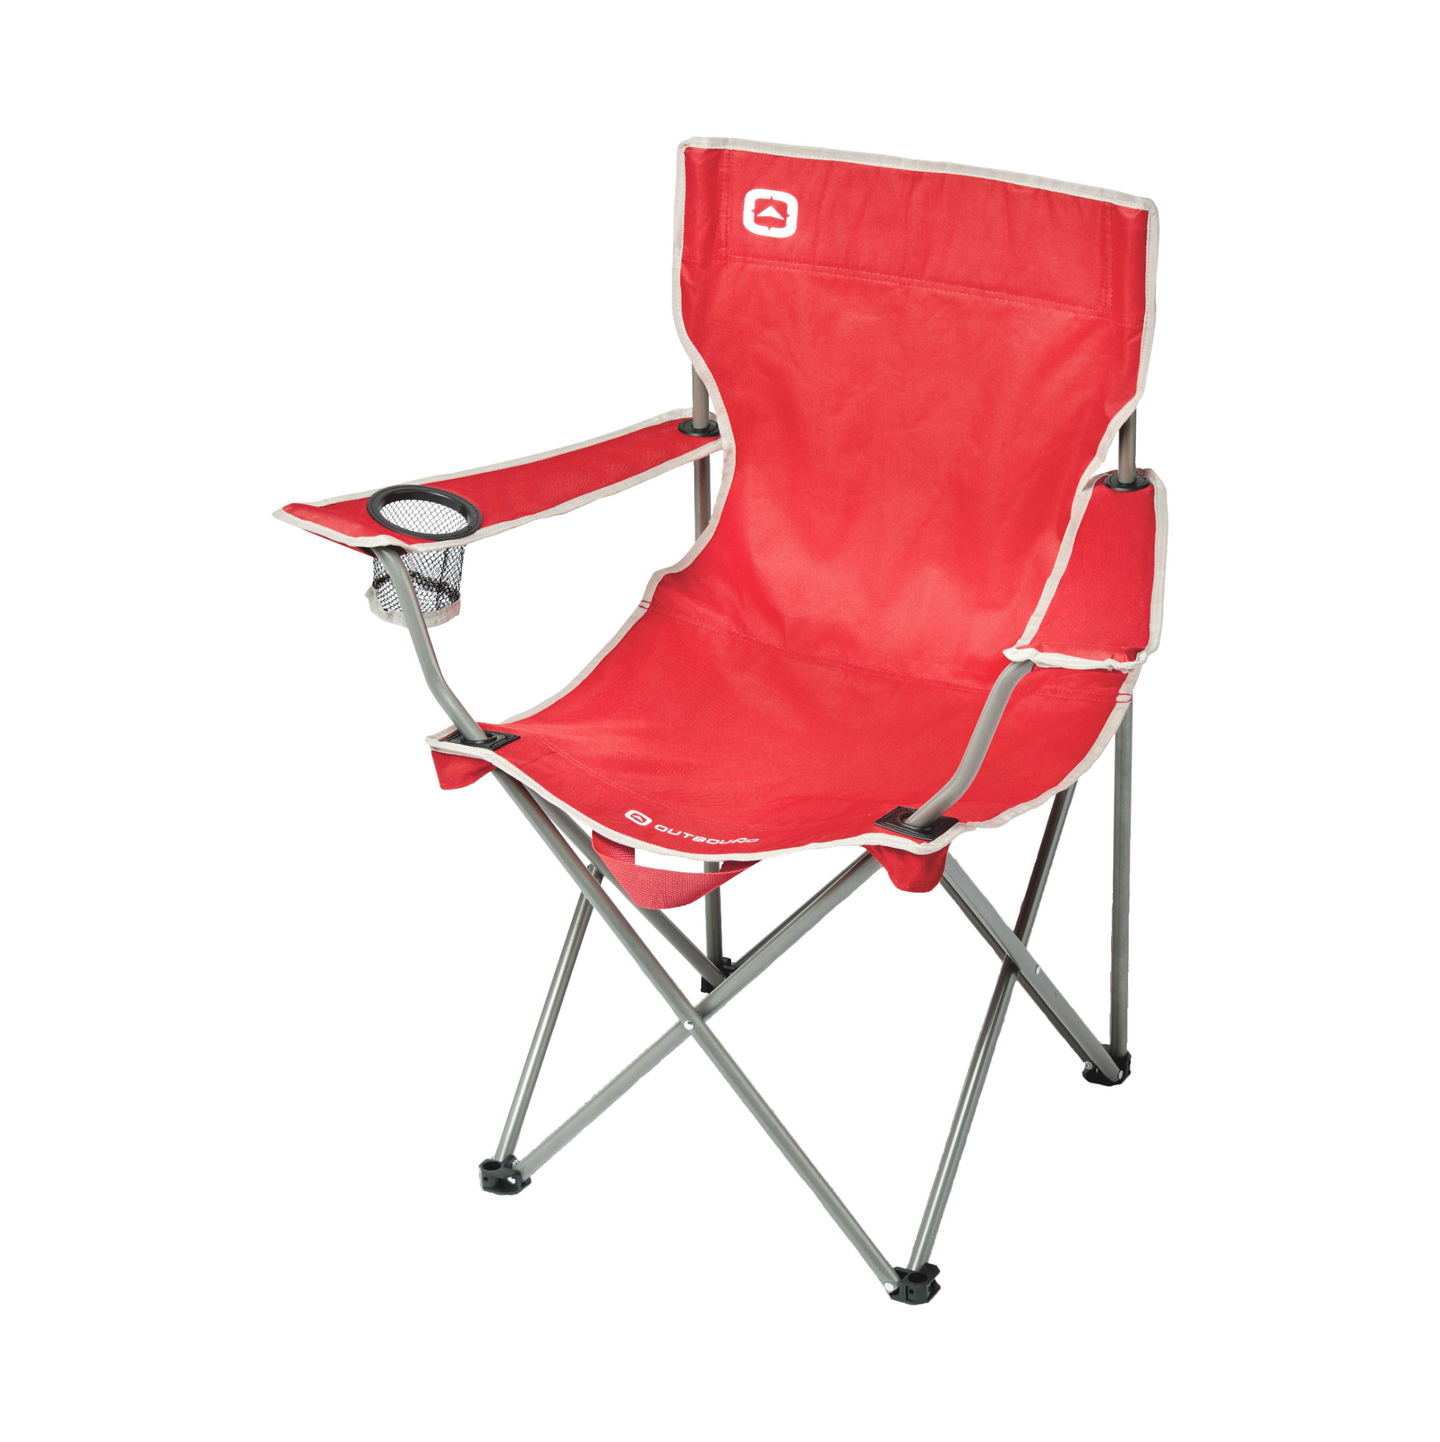 Outbound Portable Folding Quad Camping Chair with Cup Holder - Red